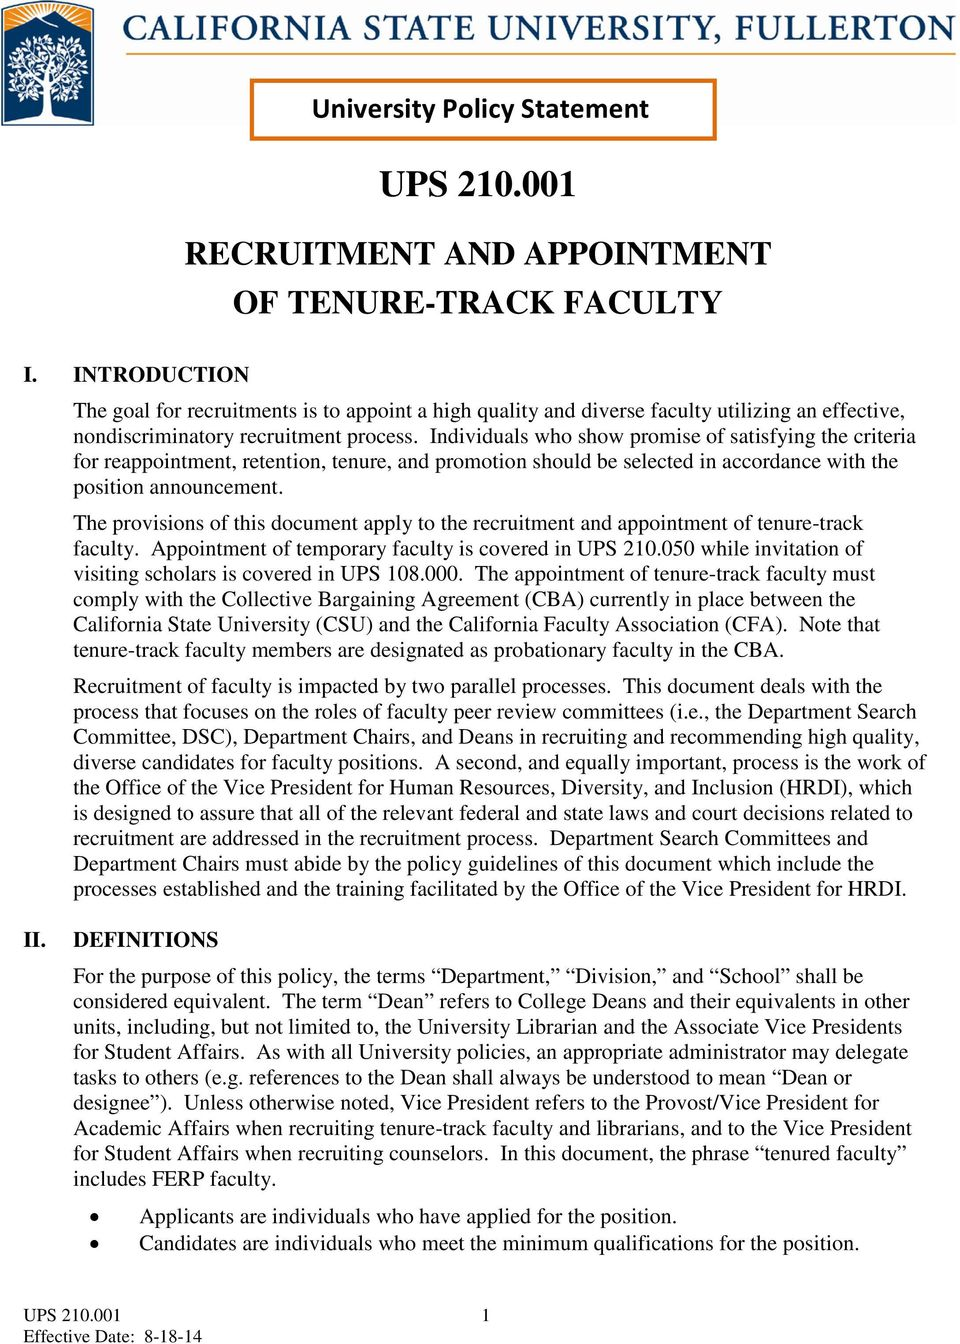 Individuals who show promise of satisfying the criteria for reappointment, retention, tenure, and promotion should be selected in accordance with the position announcement.